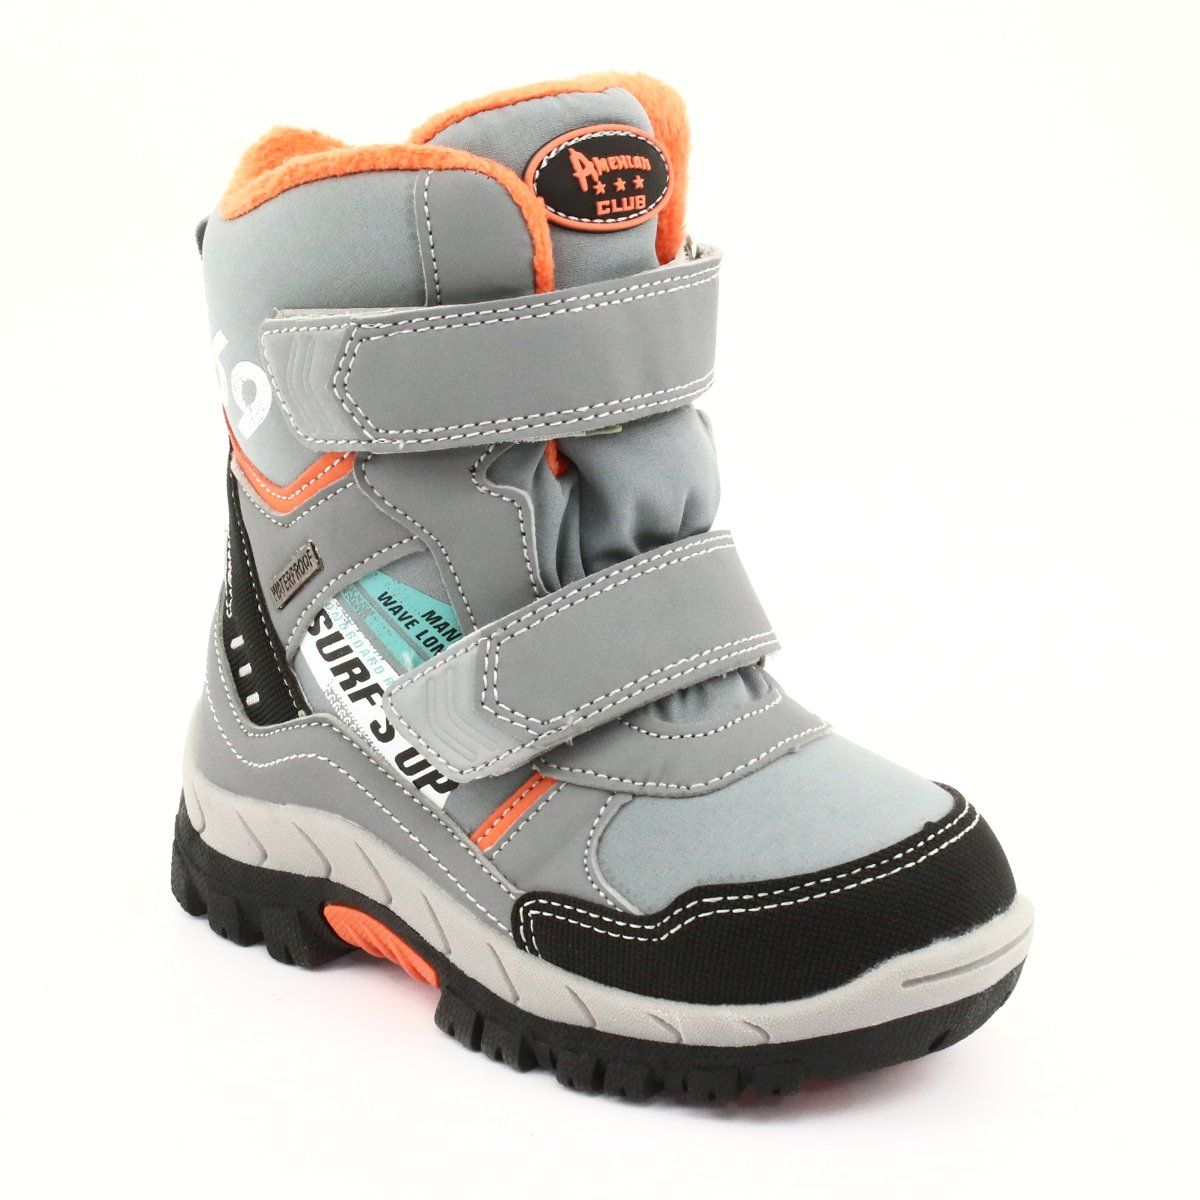 Boots For Children Americanclub American Club Boots With A Rl34 Membrane Bot